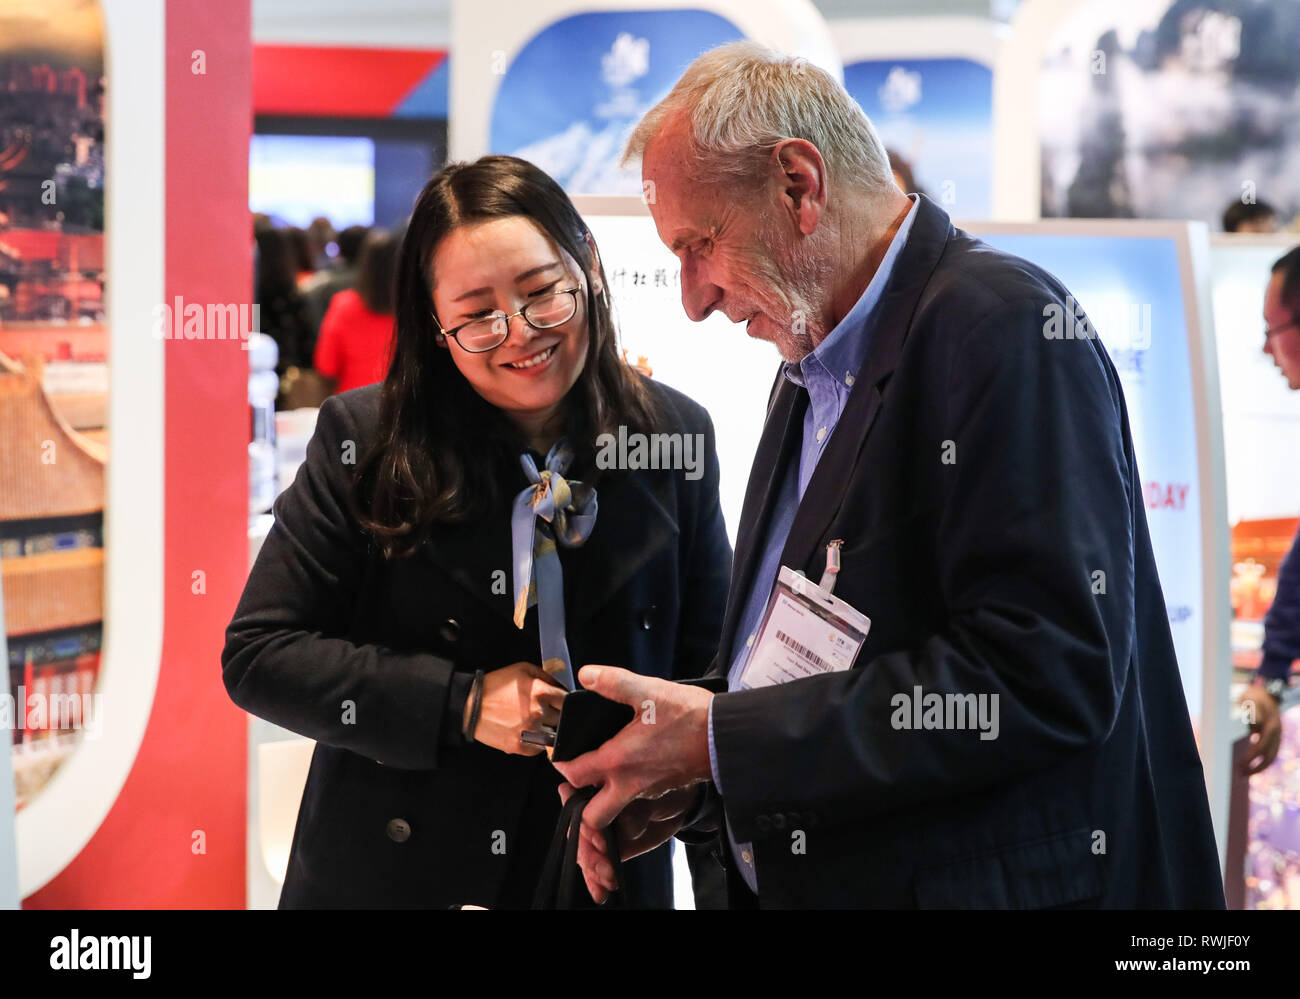 Berlin, Germany  6th Mar, 2019  A visitor talks with a staff member